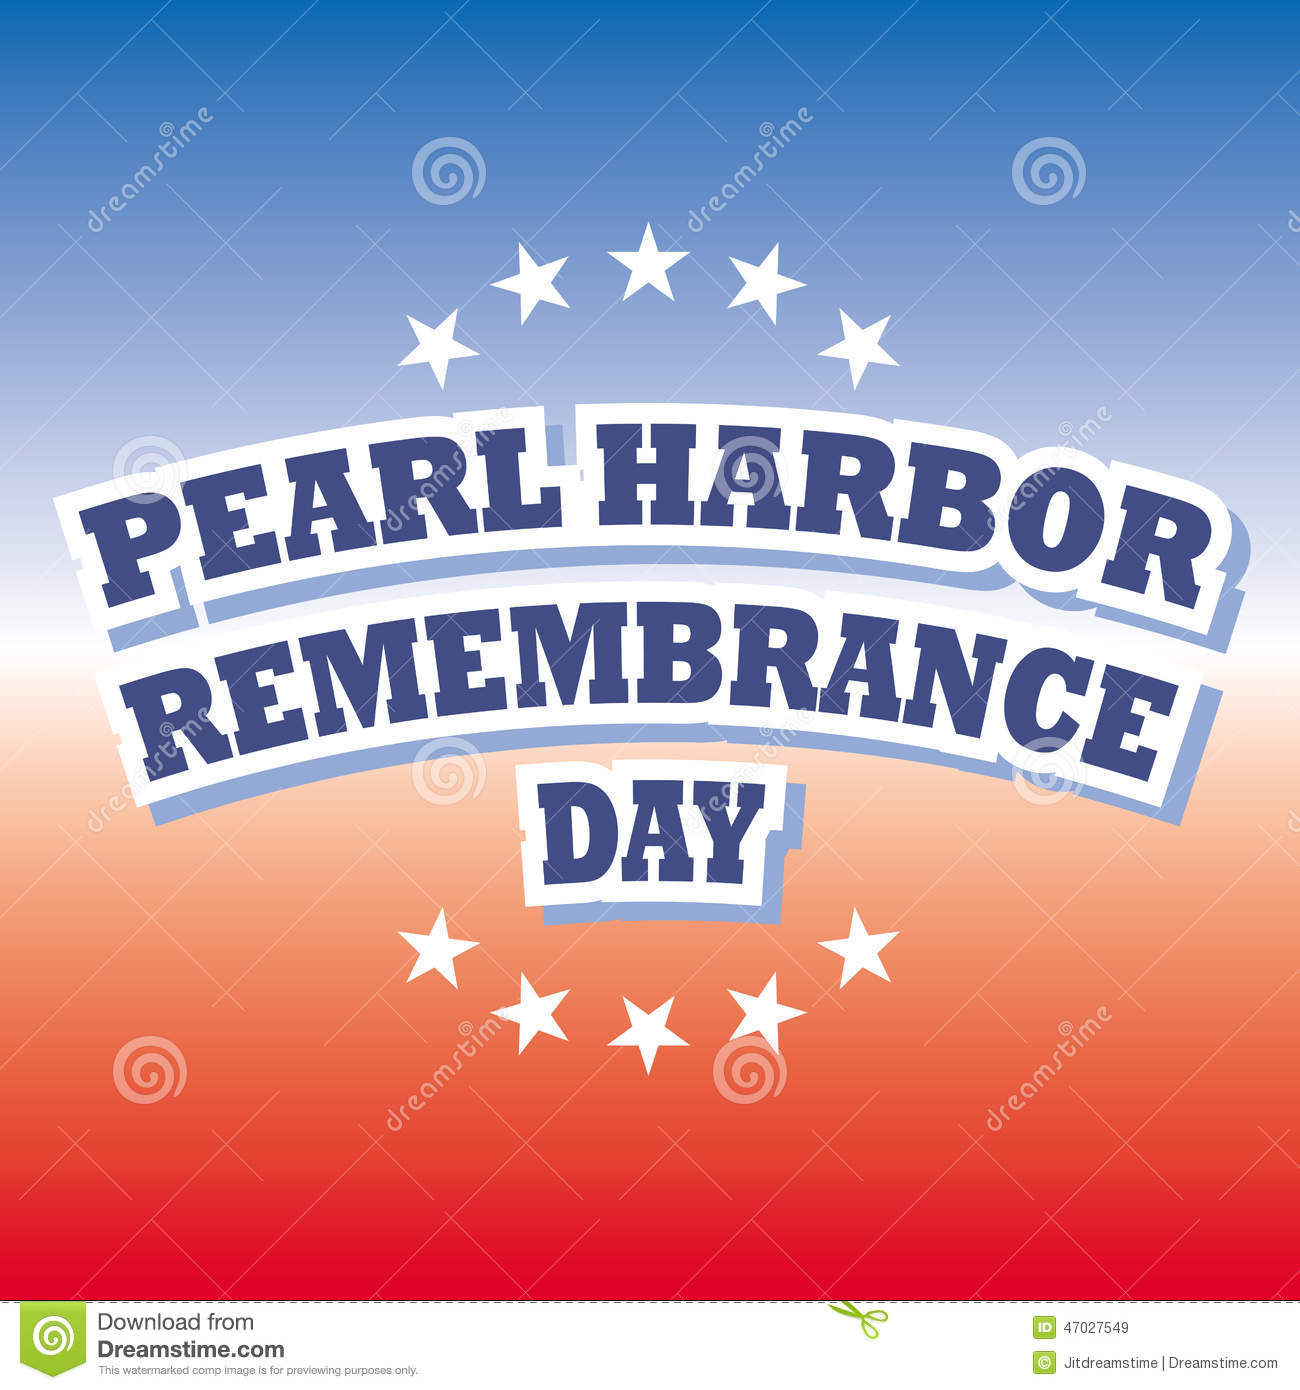 Pearl Harbor Remembrance Day Stock Vector